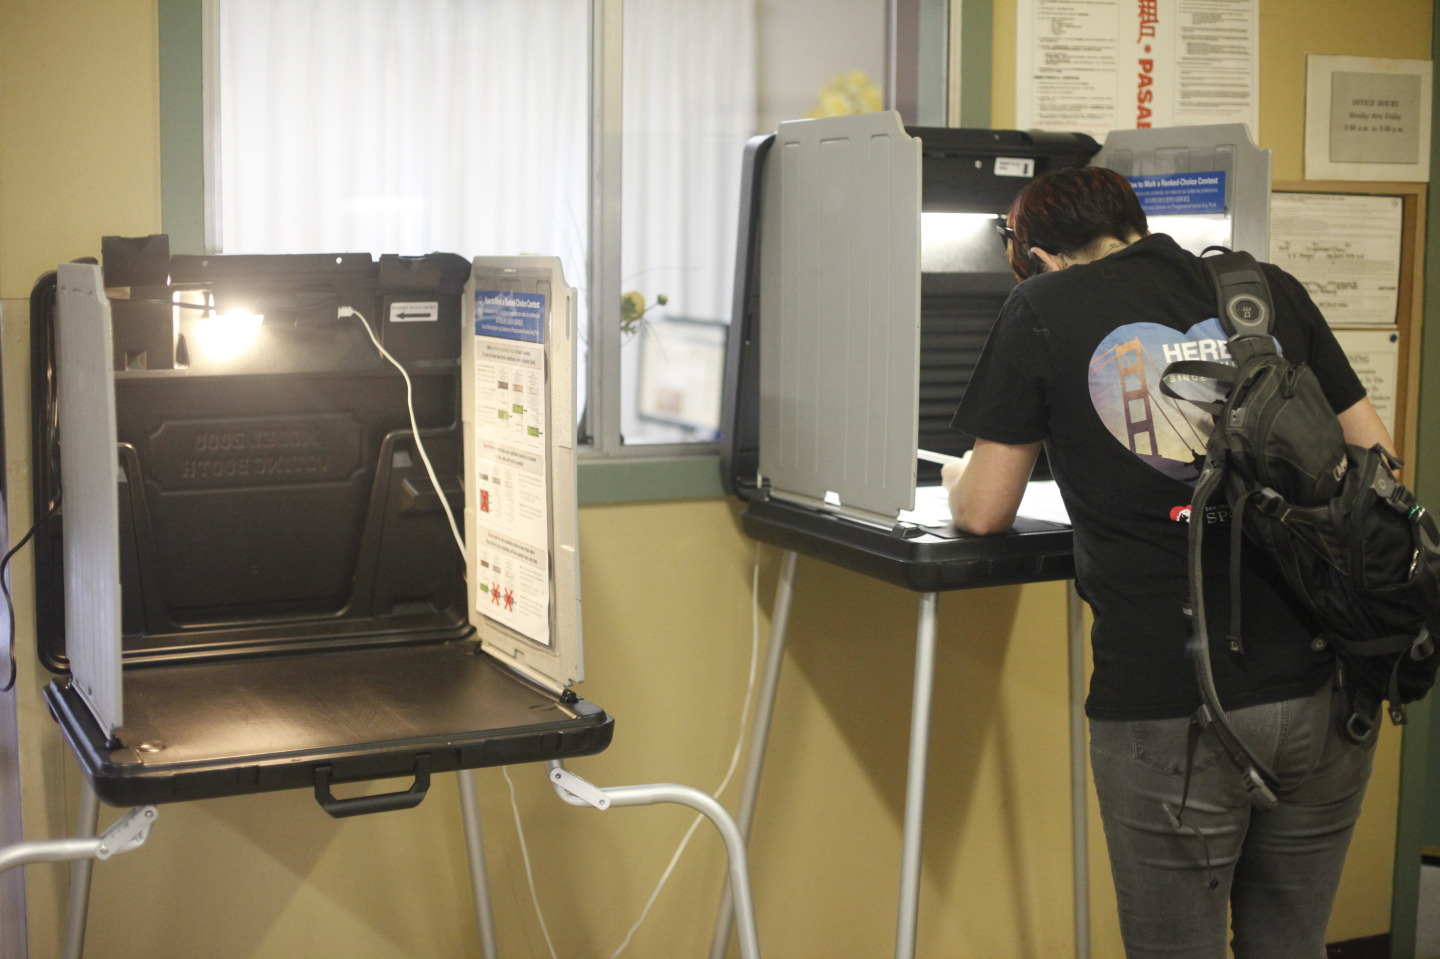 Lauren Taylor, 28, votes at her polling place on 36 Hoff St. in San Francisco's Mission District. (Katie Brigham/KQED)